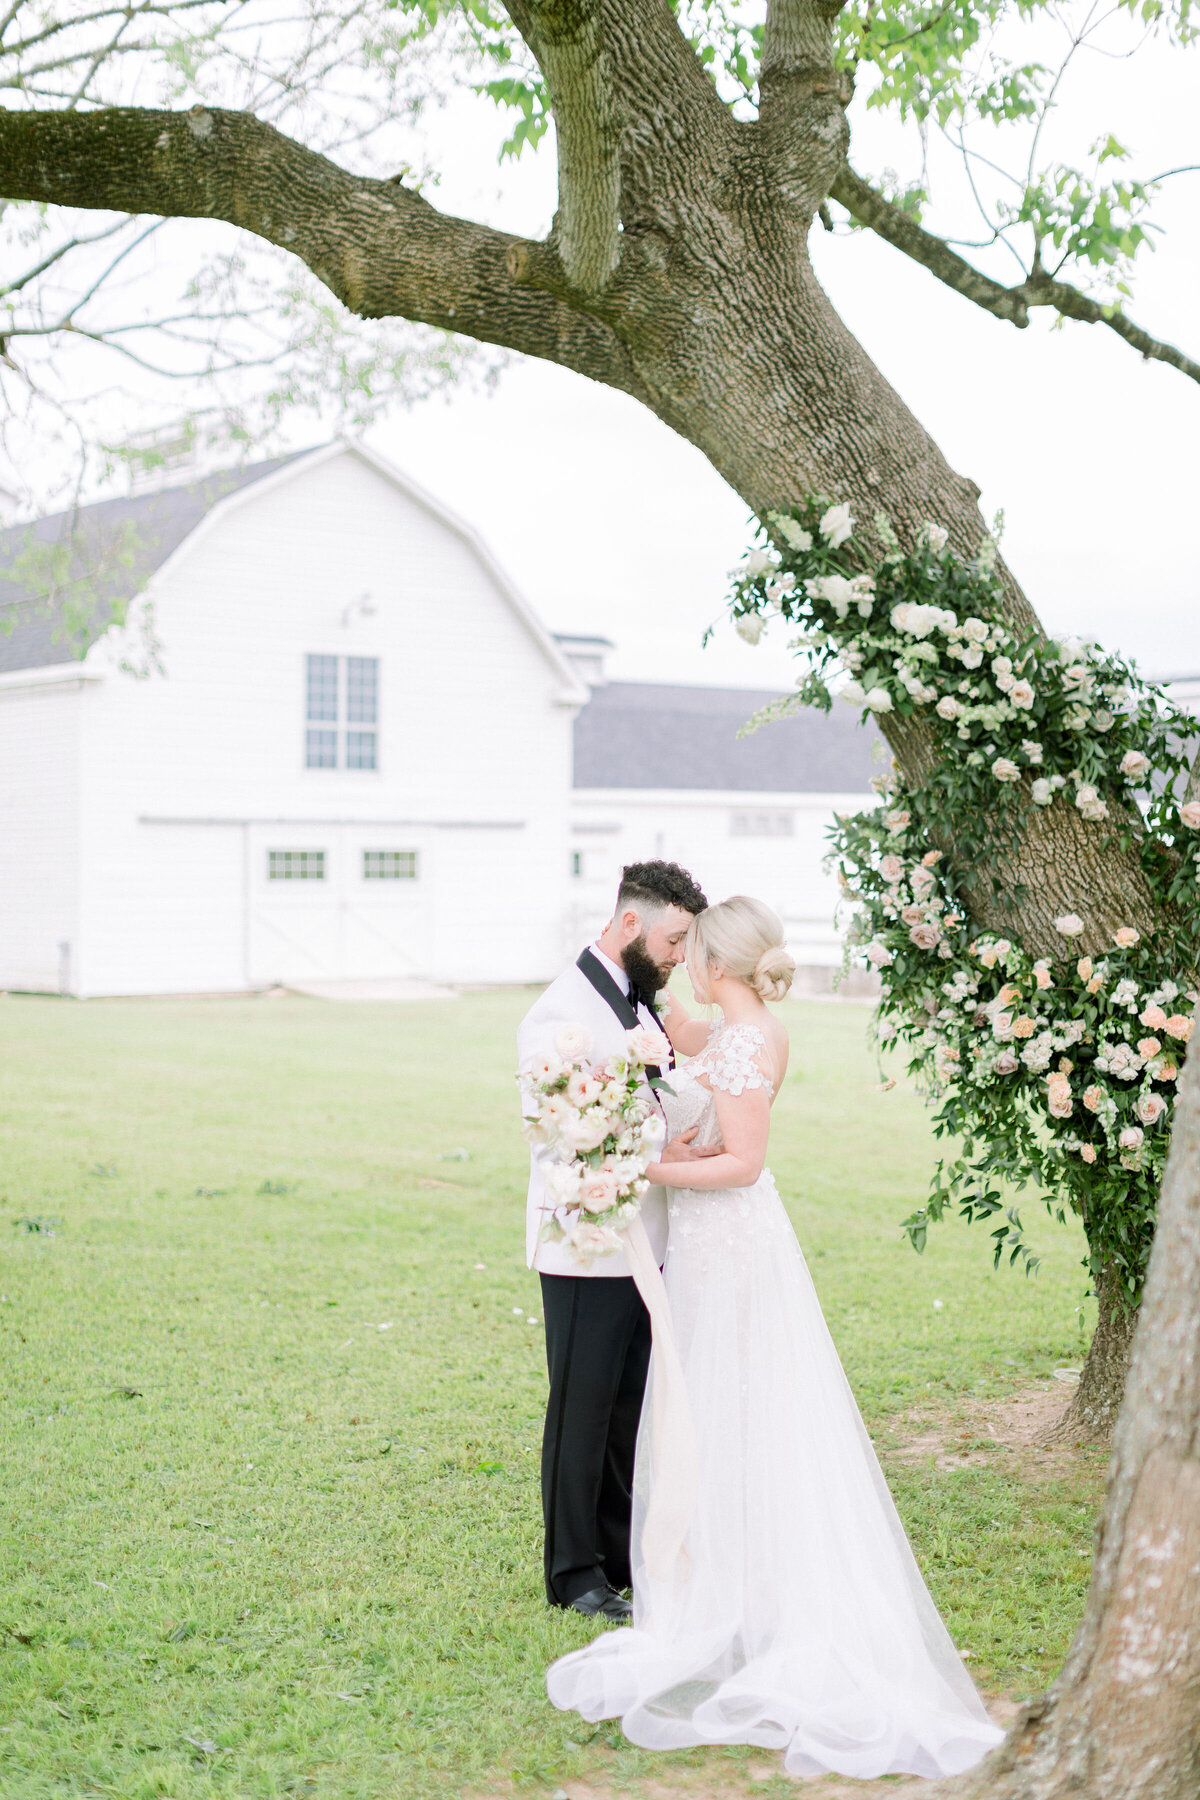 A gorgeous bride and groom standing in front of the Grand Texana's dairy barns. They are dressed in wedding attire with florals wrapping the trees behind them